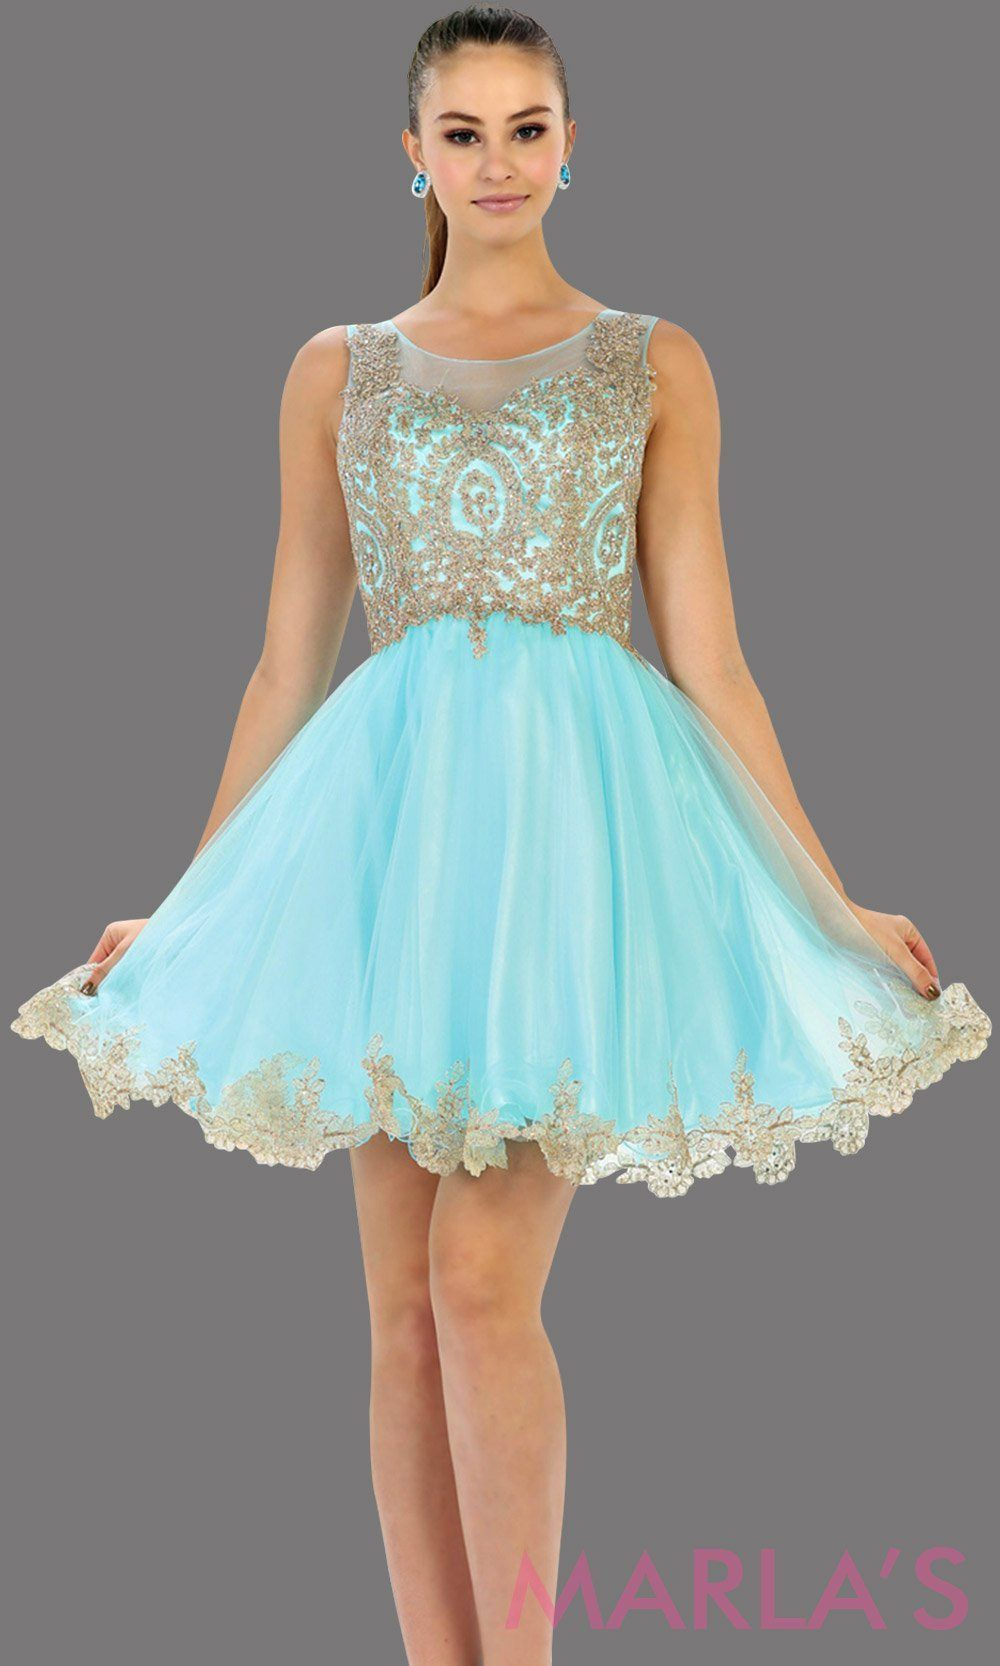 355f168c28c2 Short aqua high neck grade 8 grad puffy dress with gold lace. This light  blue grade 8 graduation short dress and pretty. Can be worn for quinceanera  damas, ...